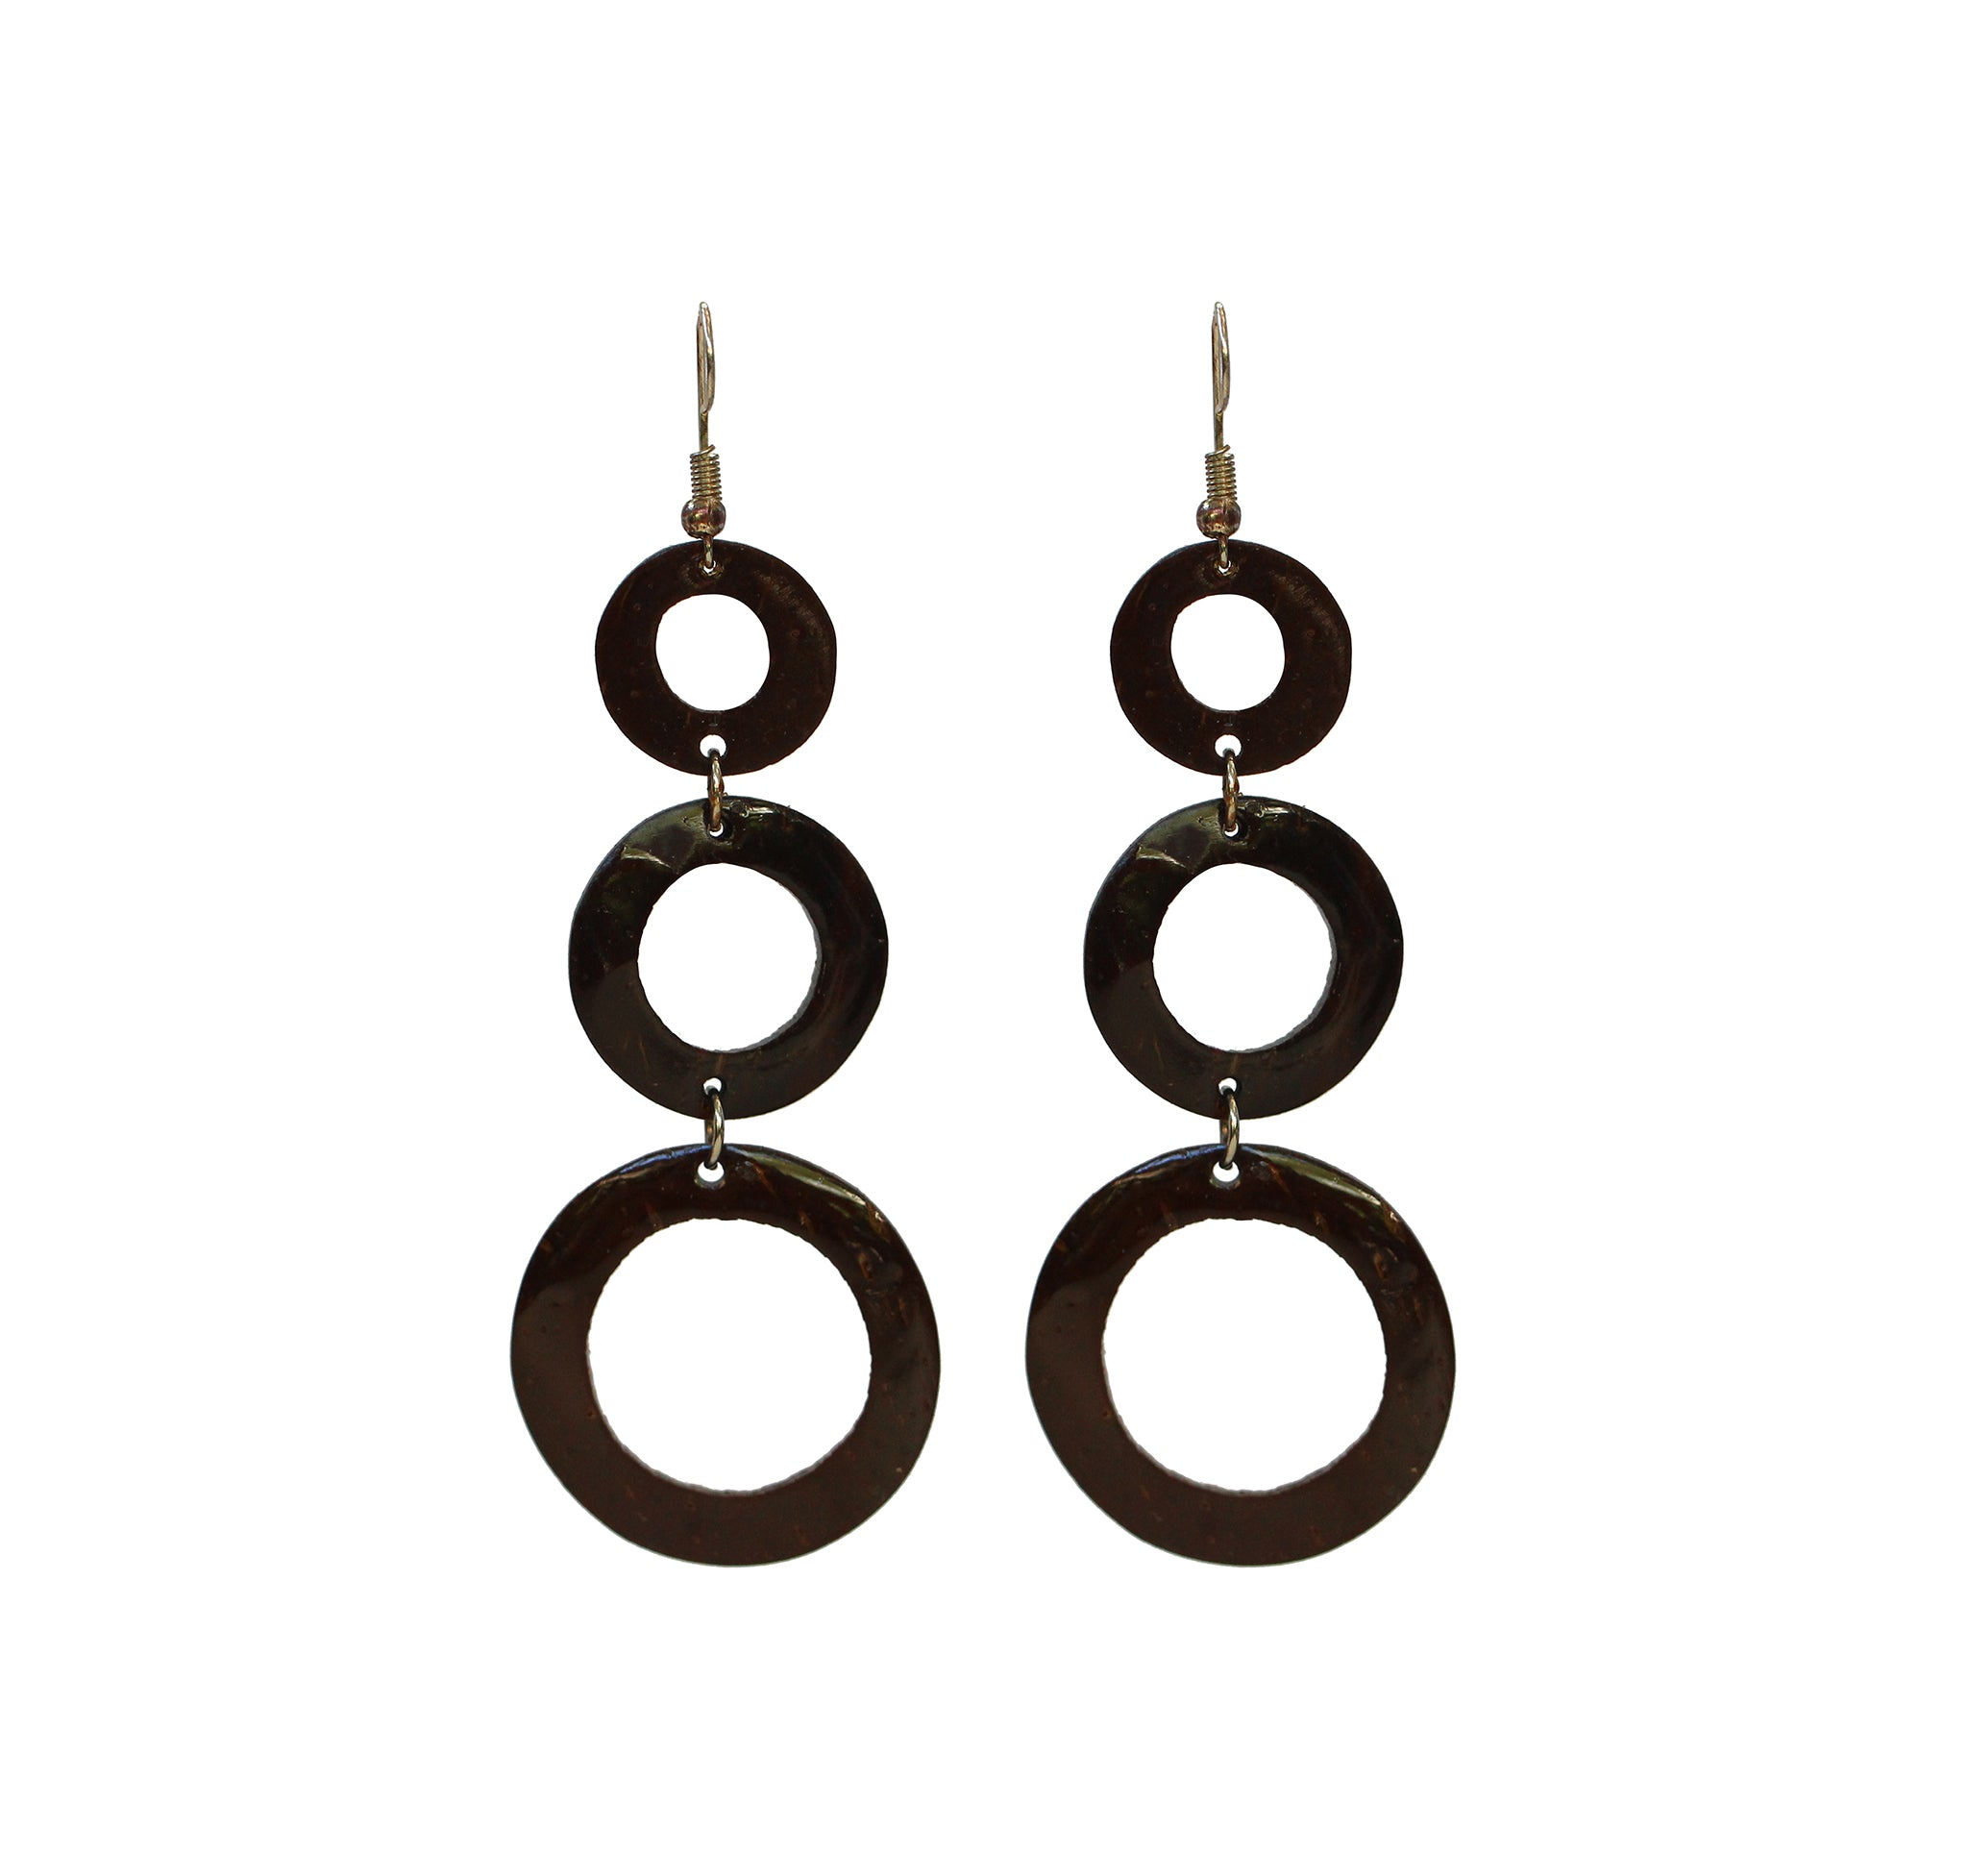 Coconut Earrings - Triple Tier Circle